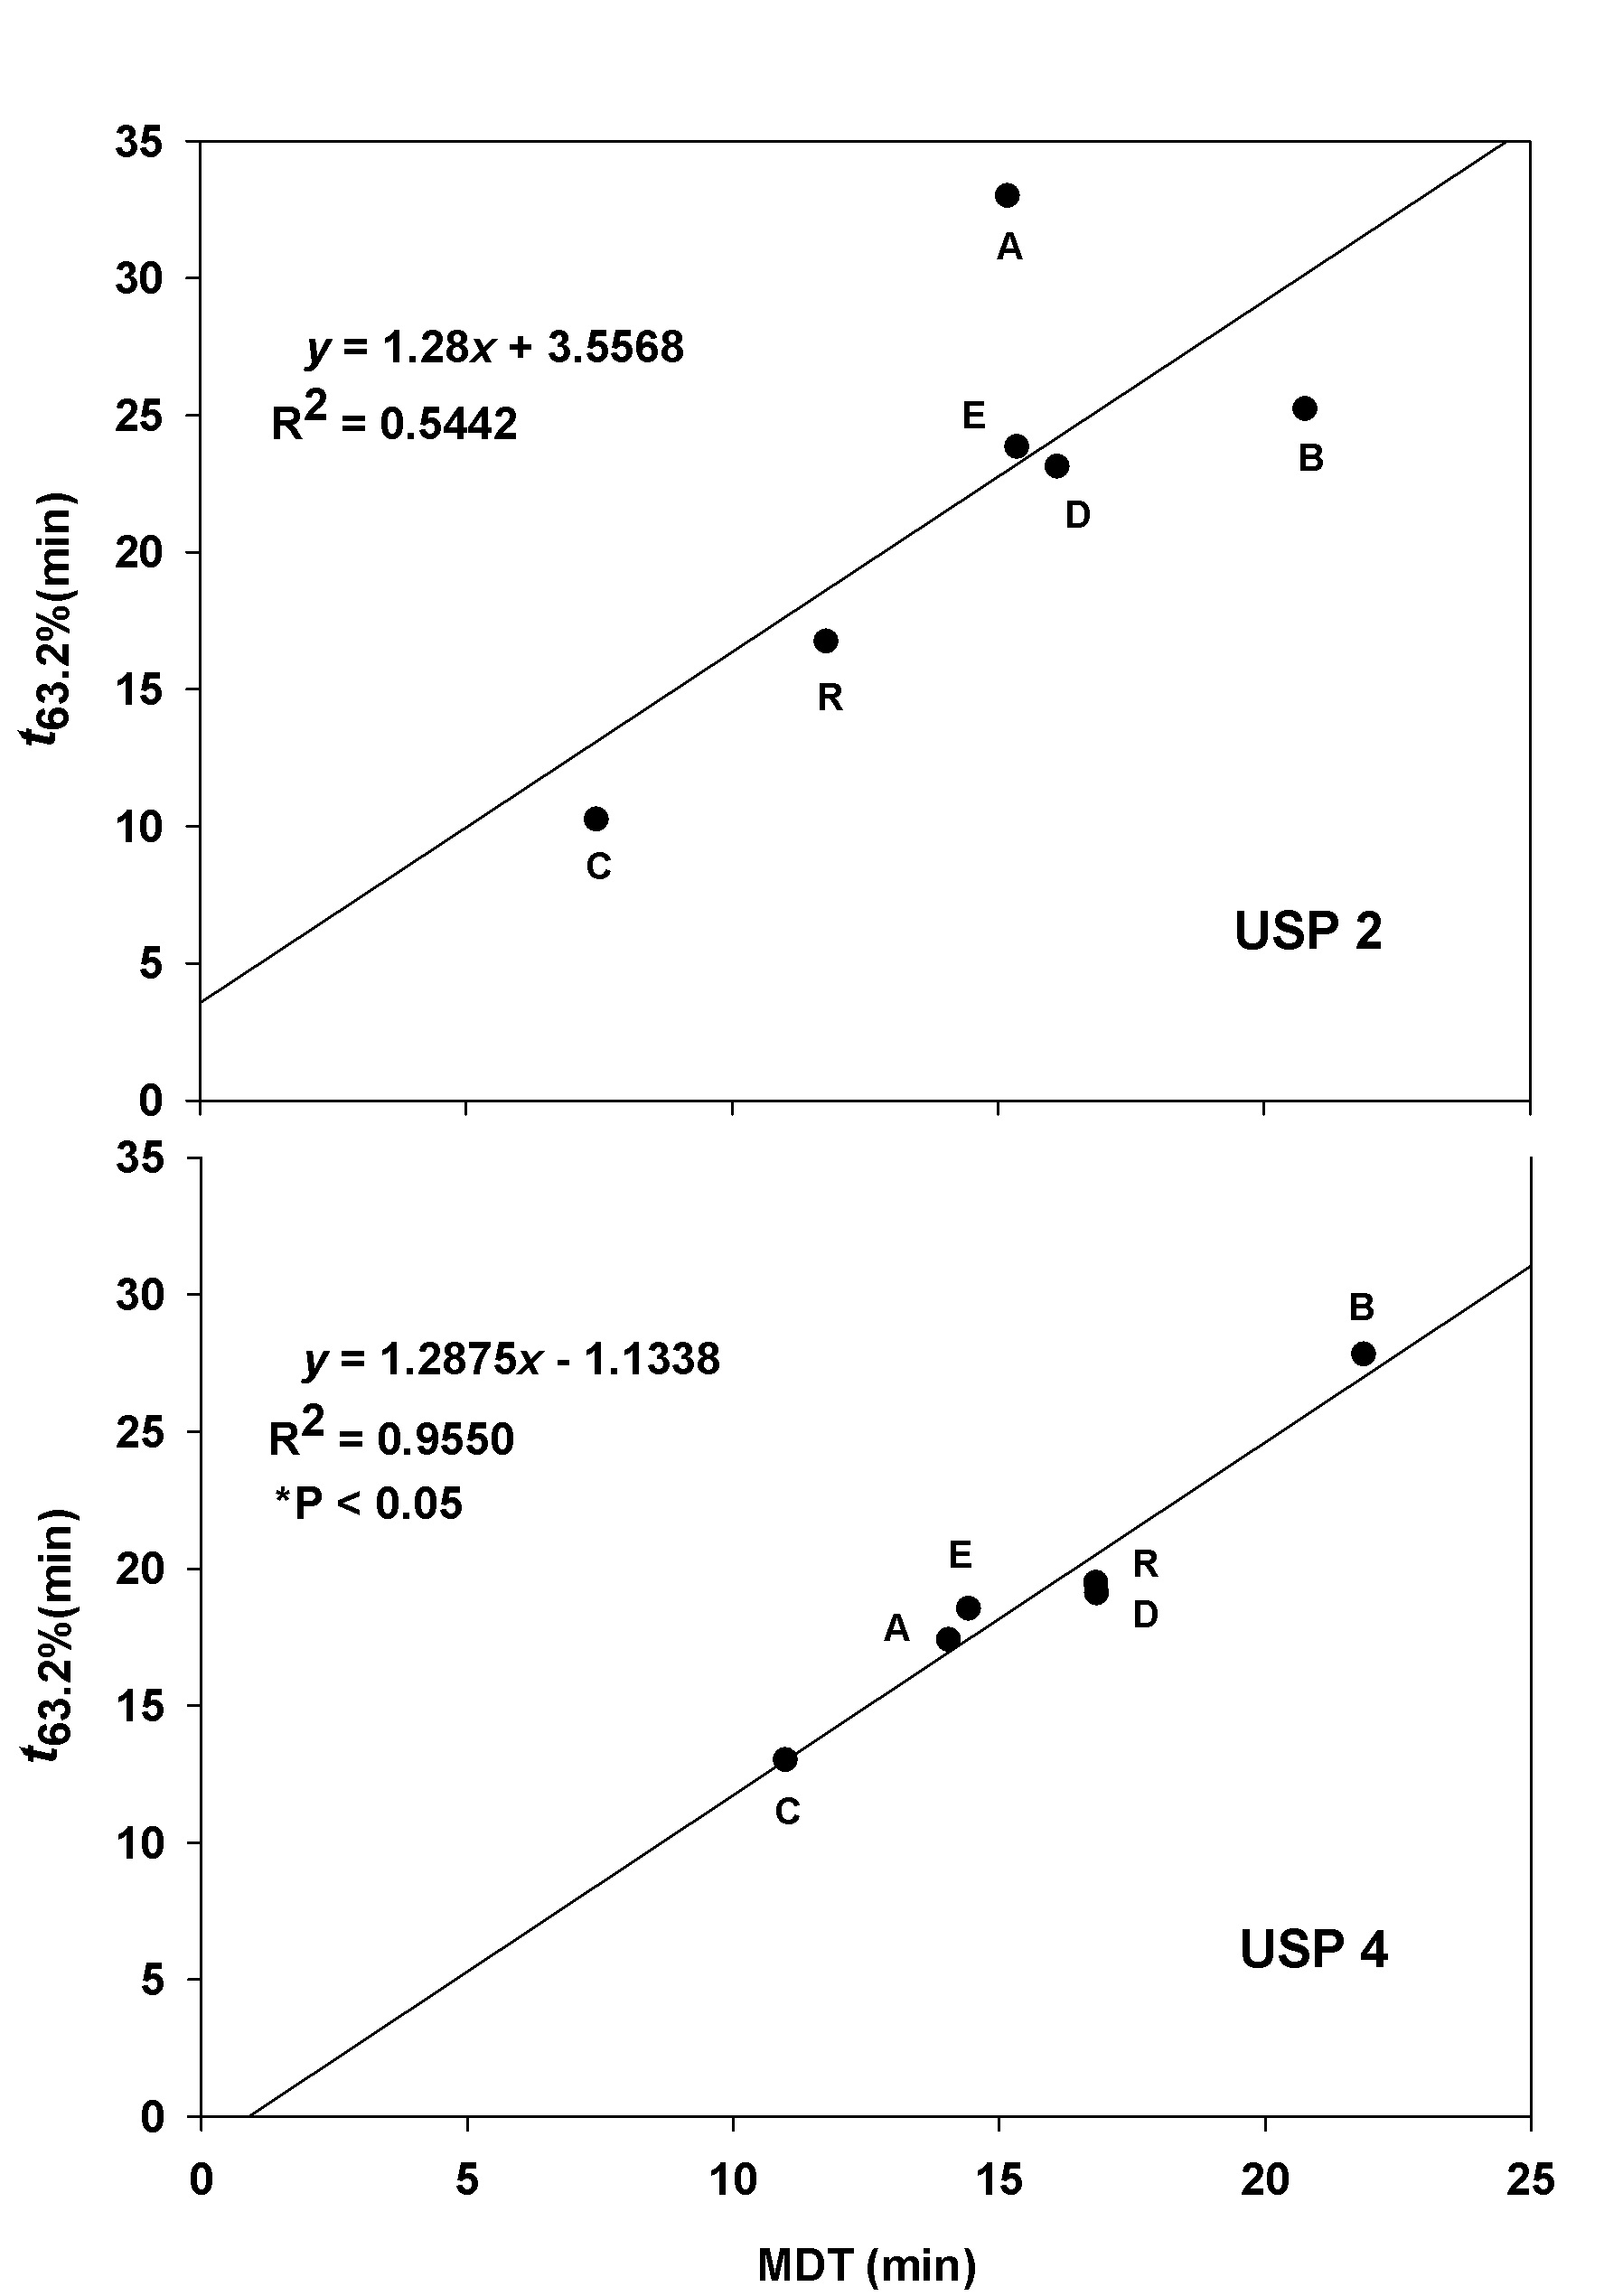 Naproxen 40 mg.doc - 4 Linearity Between Mdt And T63 2 Values Of Naproxen Sodium From All Studied Products